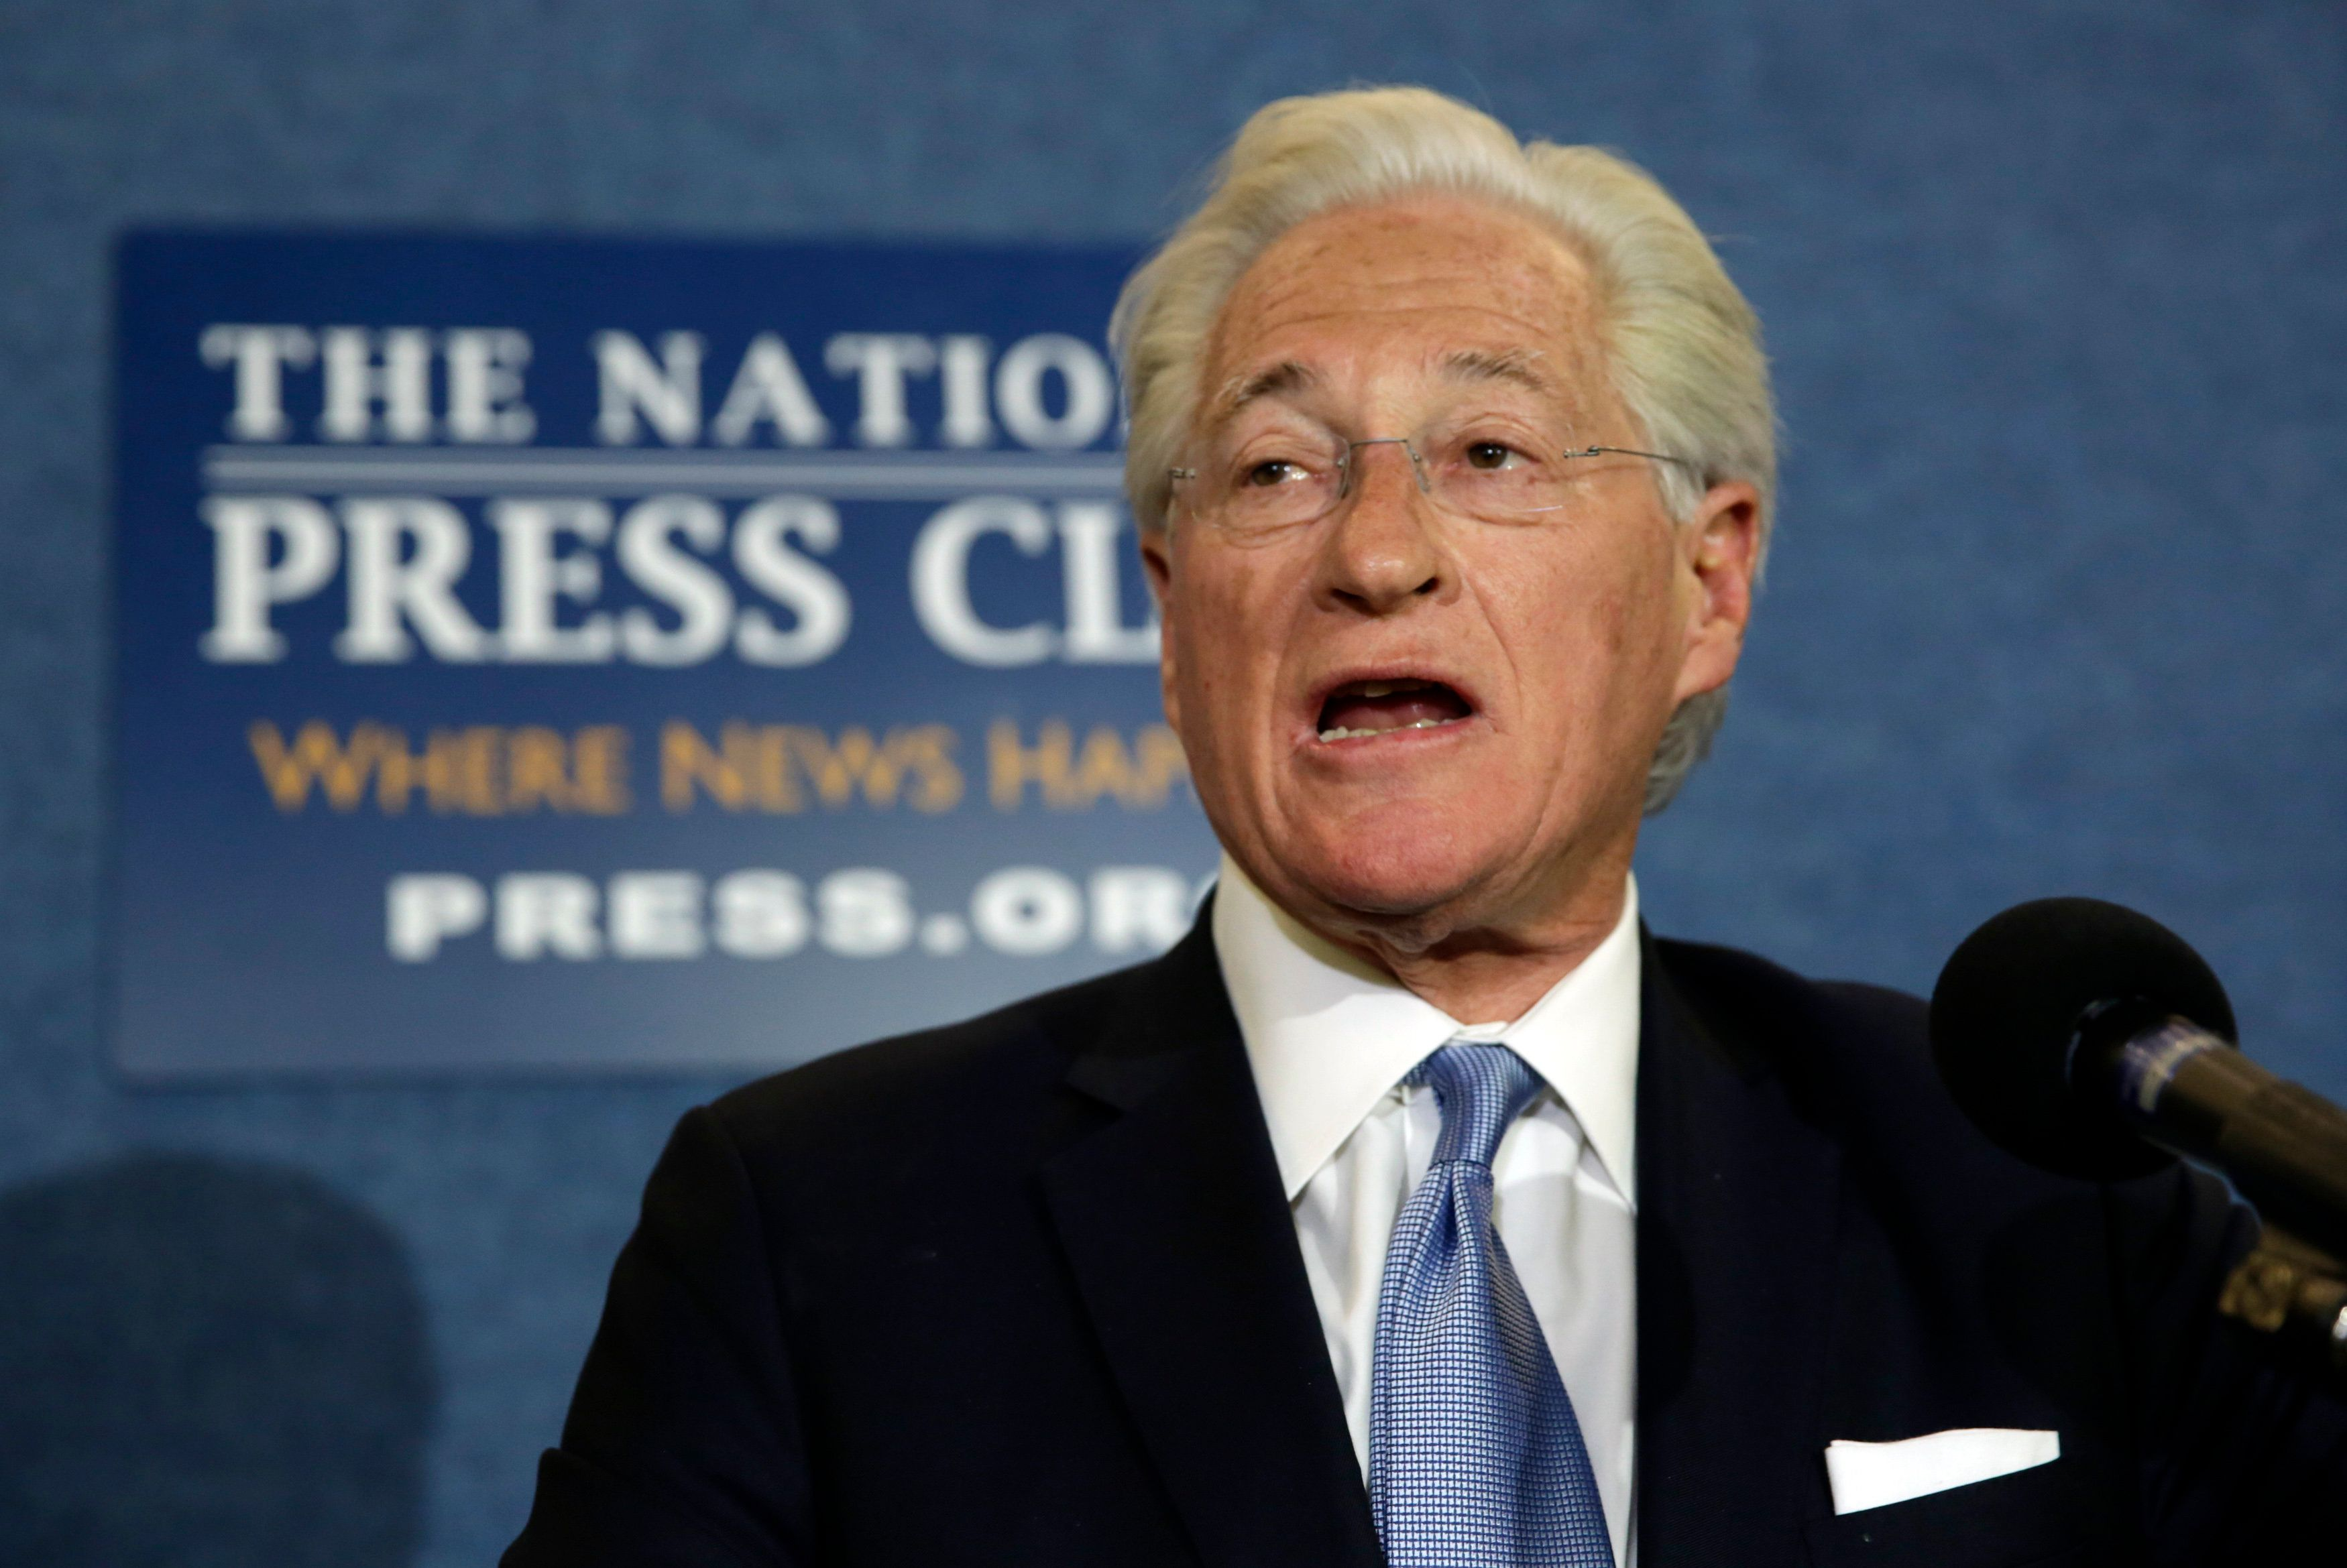 U.S. President Donald Trump's personal attorney, Marc Kasowitz, speaks to the news media after the congressional testimony of former FBI Director James Comey, at the National Press Club in Washington, U.S. June 8, 2017. REUTERS/Yuri Gripas